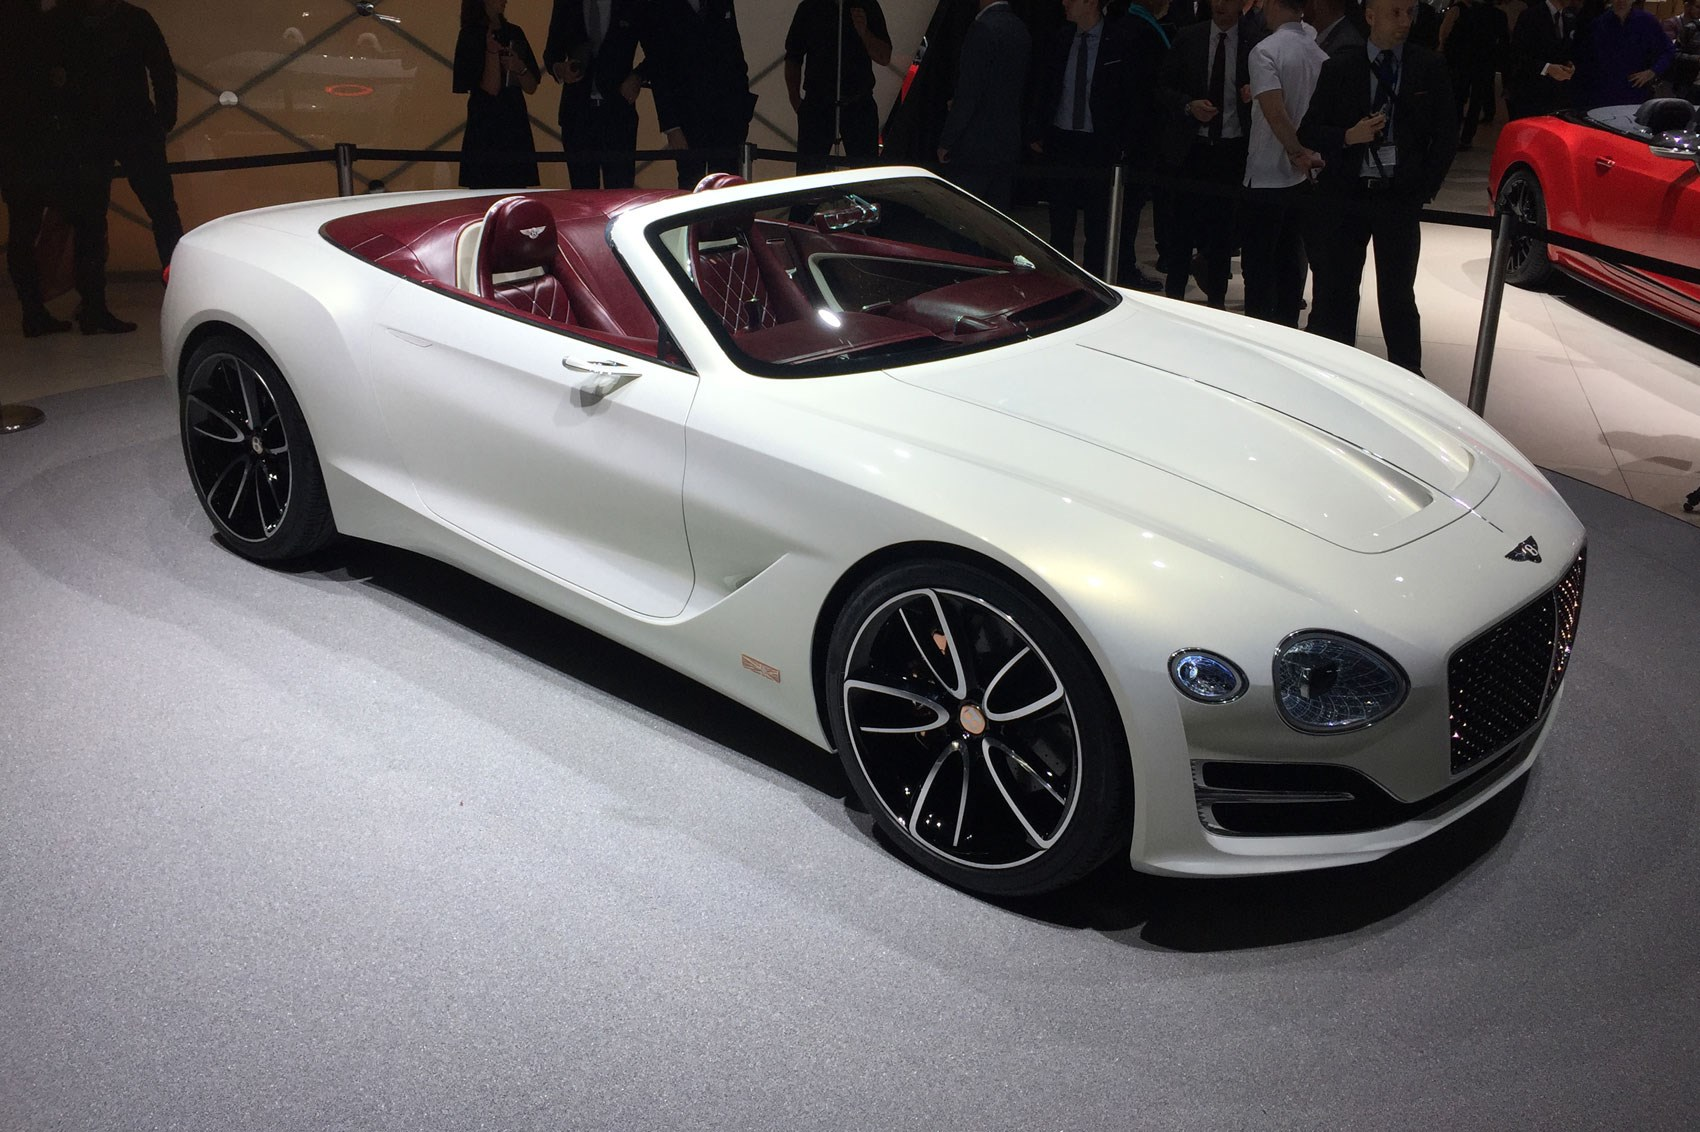 2018 bentley exp 12.  2018 bentley exp 12 speed 6e at geneva 2017  to 2018 bentley exp 8